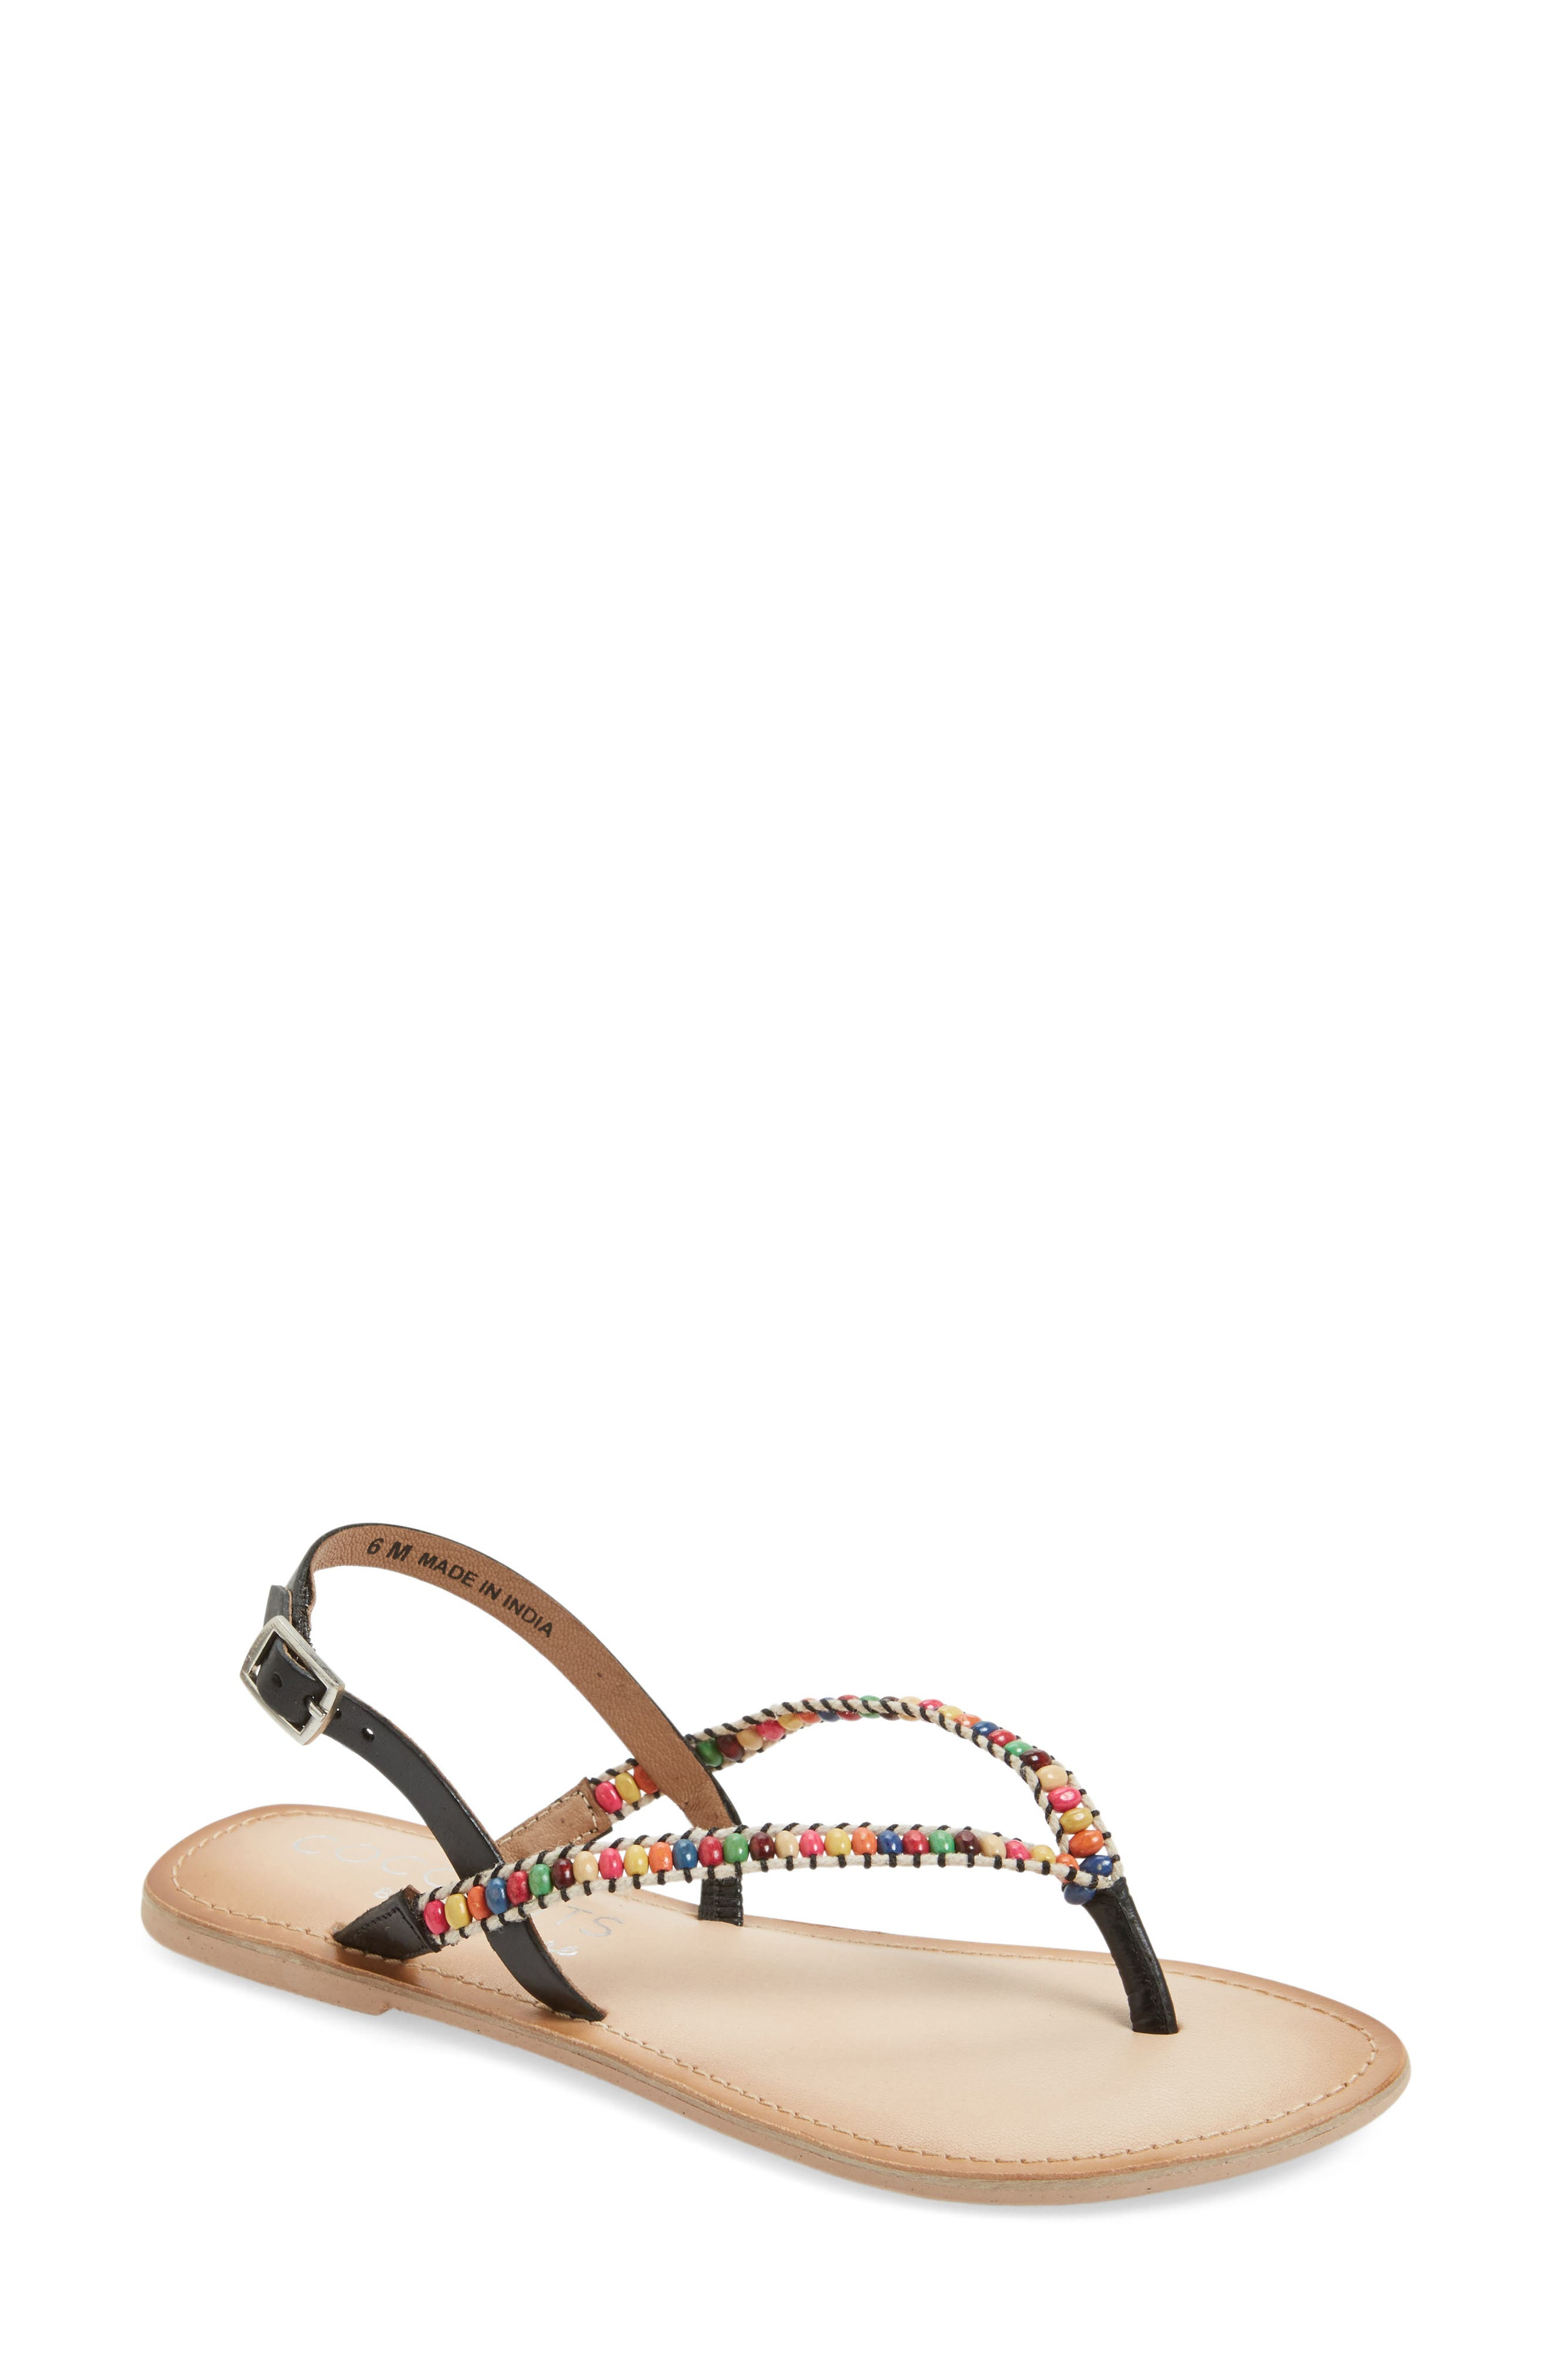 Coconuts by Matisse Celebration Beaded Sandal,                         Main,                         color, 001